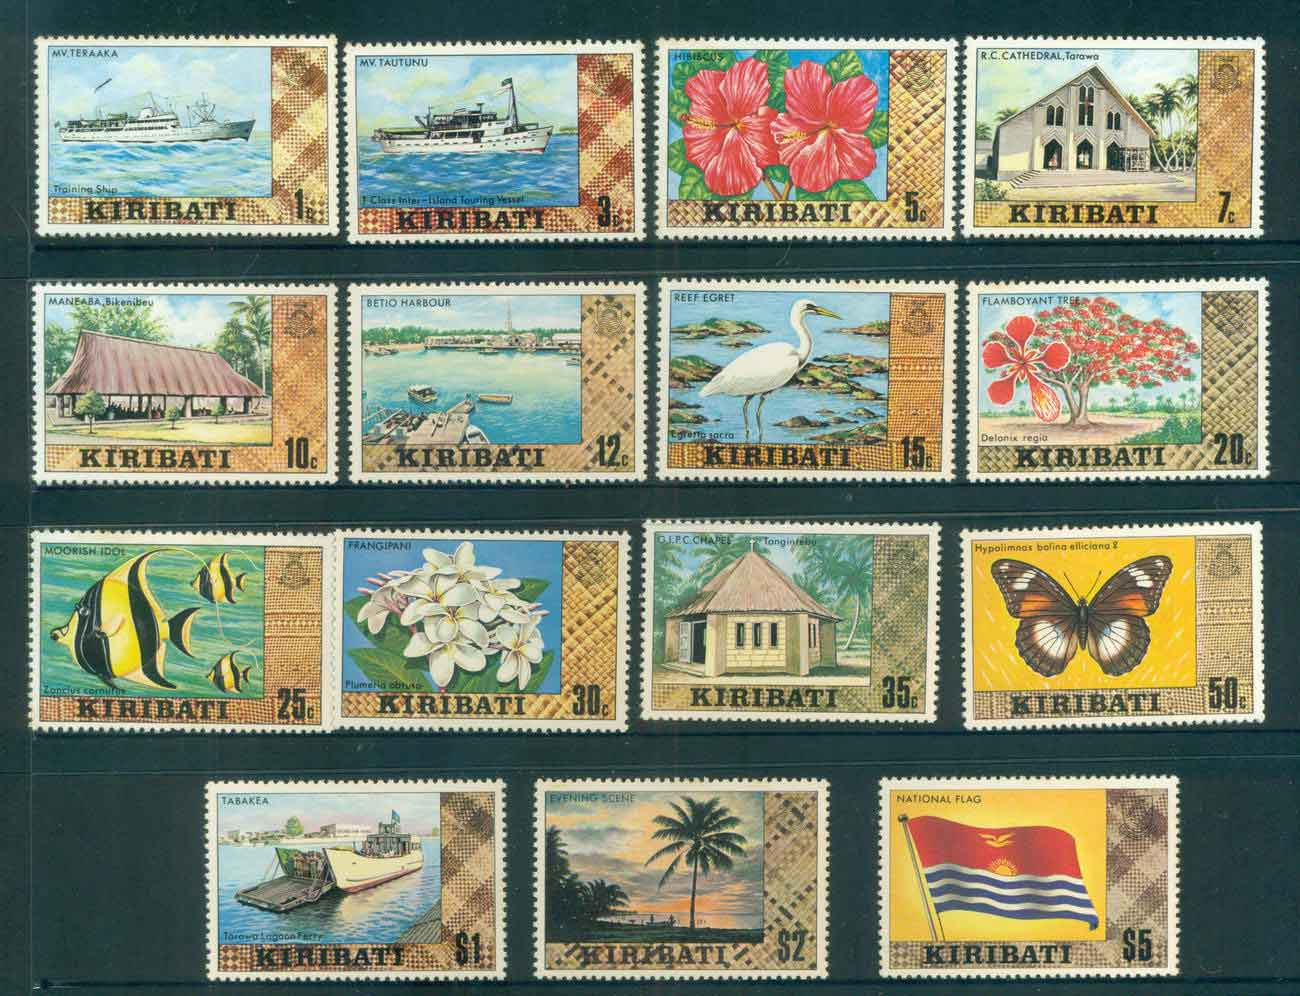 Kiribati 1980 Pictorial Definitives No Wmk (light tones) MUH lot52013